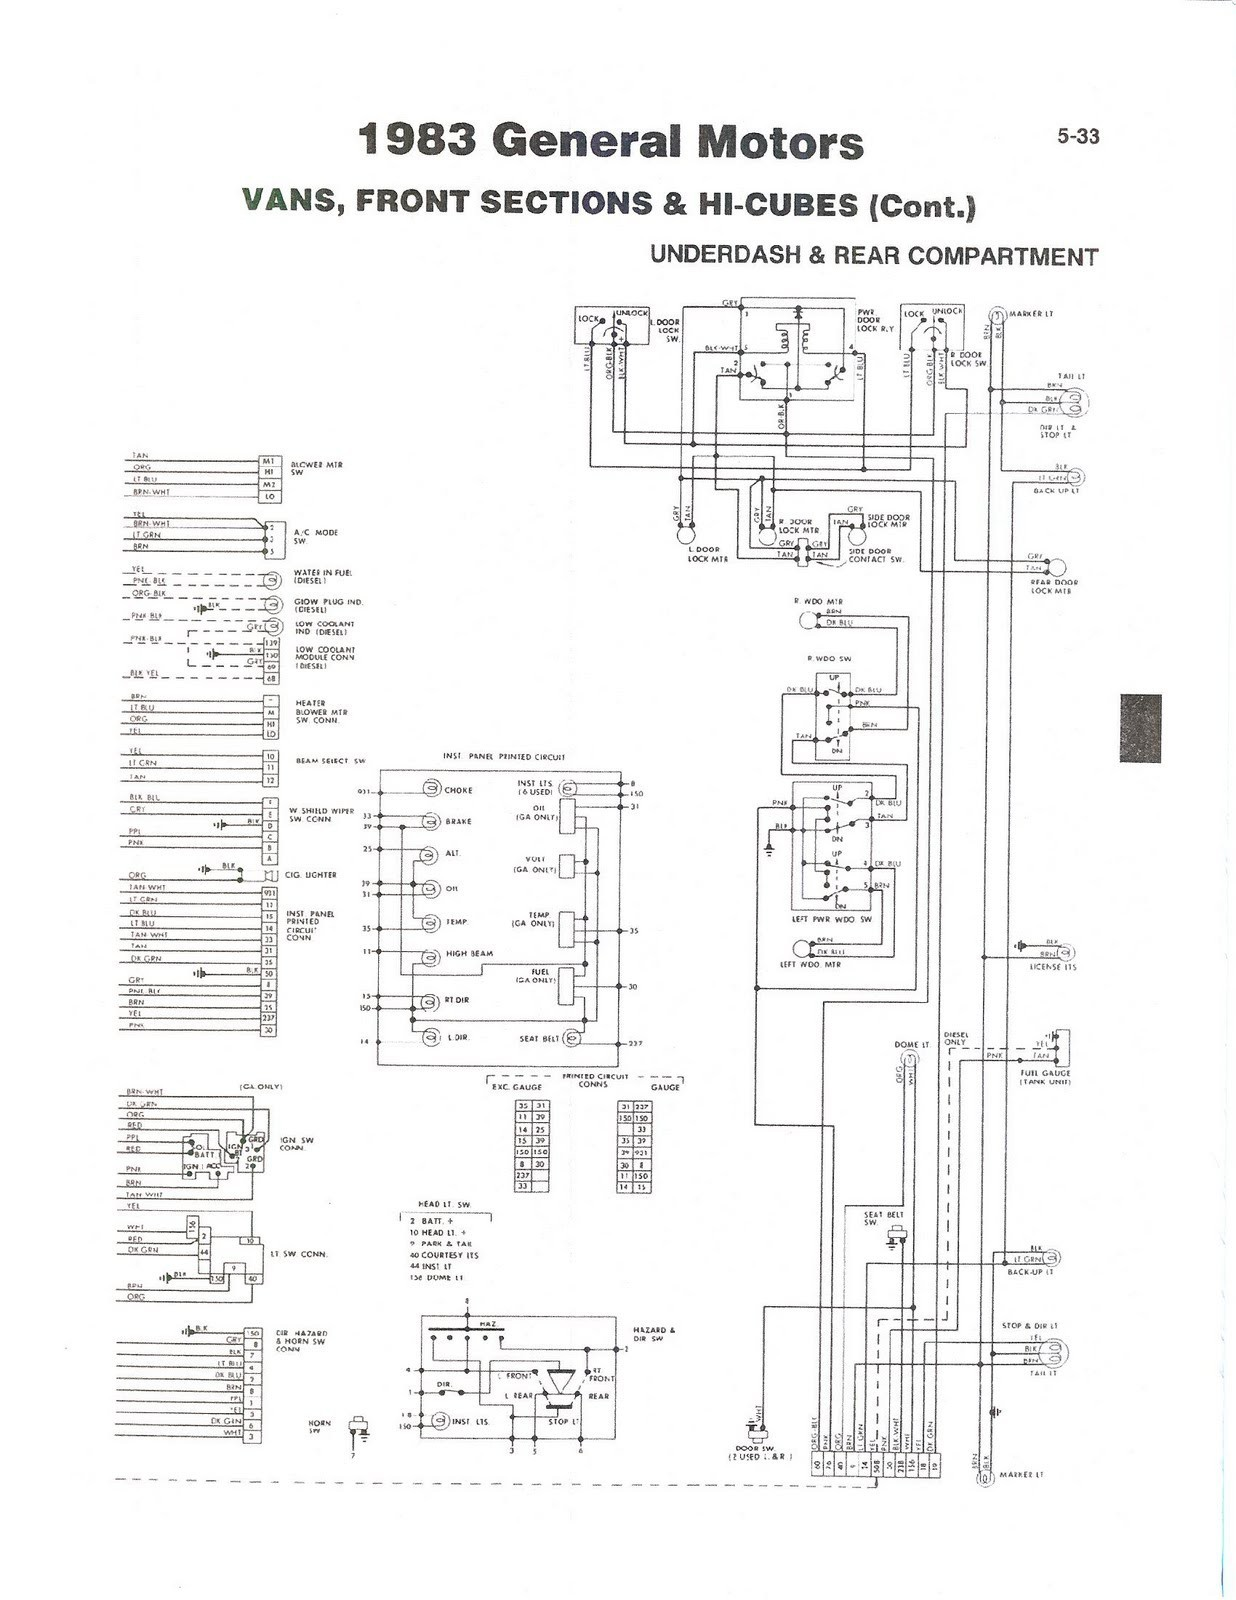 Tiffin motorhome wiring diagram wiring diagrams tiffin motorhome wiring diagram inspirational wiring diagram image motorhome on water 12 volt wiring schematic for cheapraybanclubmaster Image collections